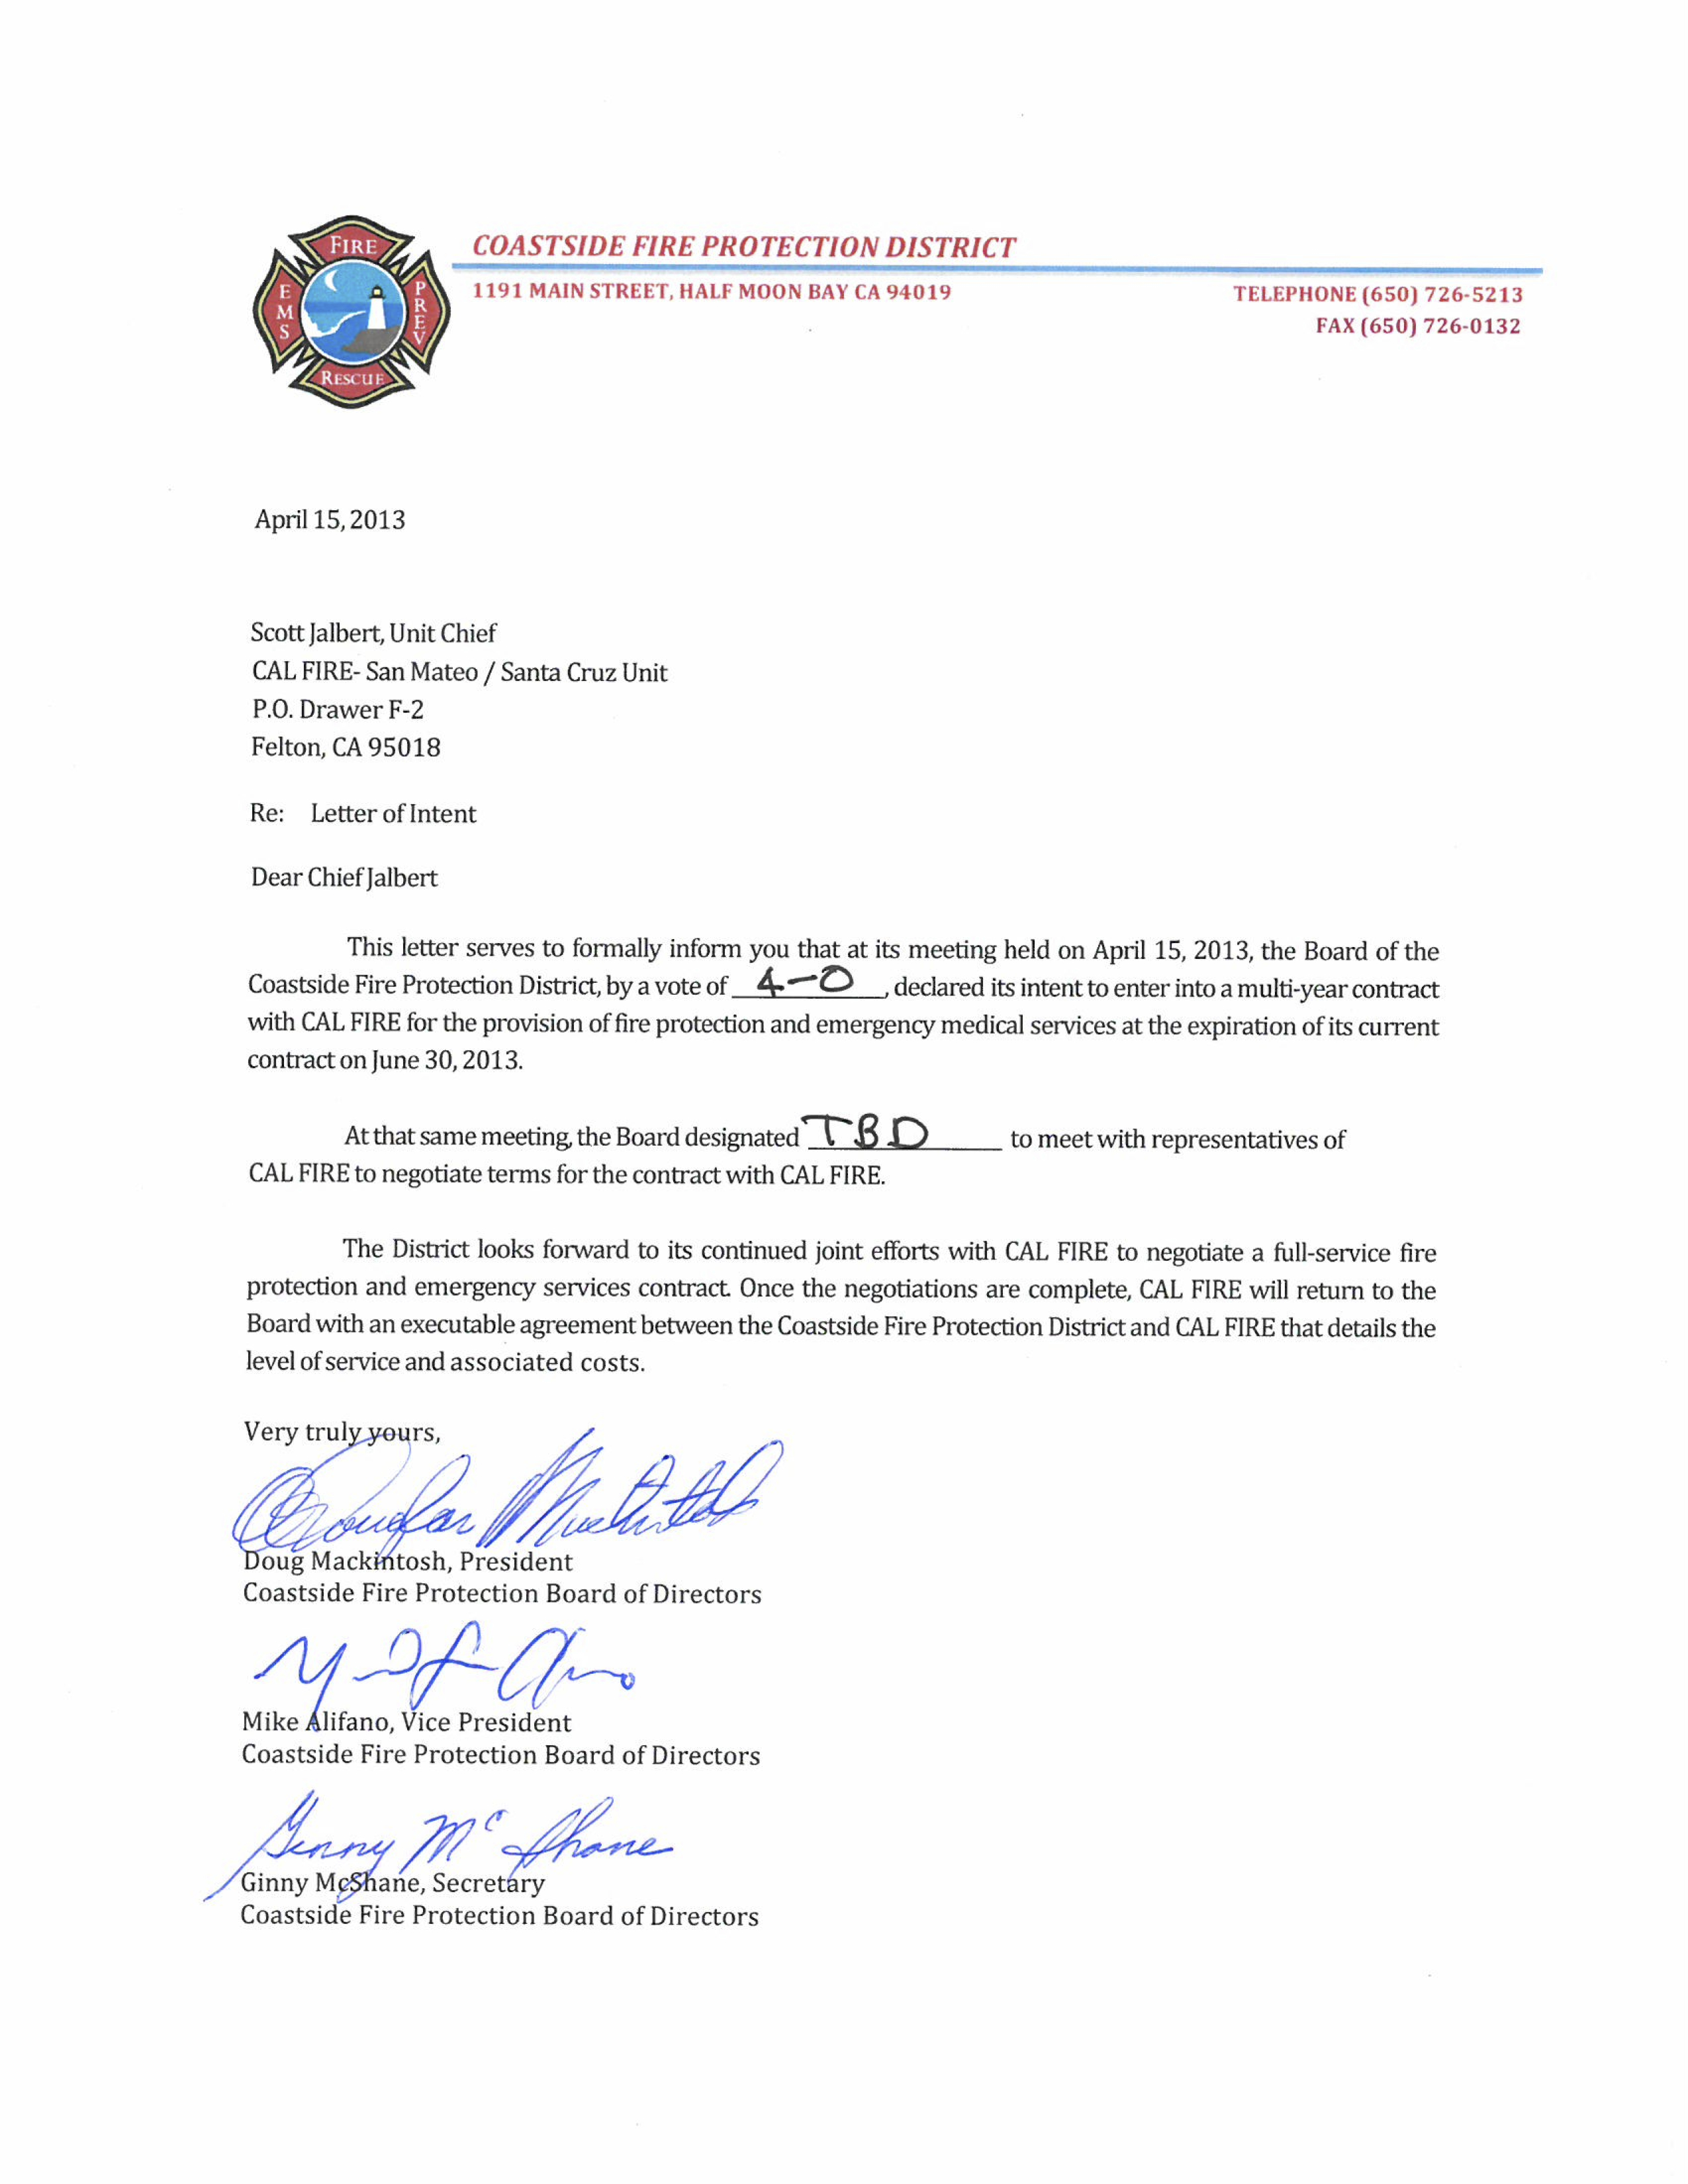 Official Letter Of Intent